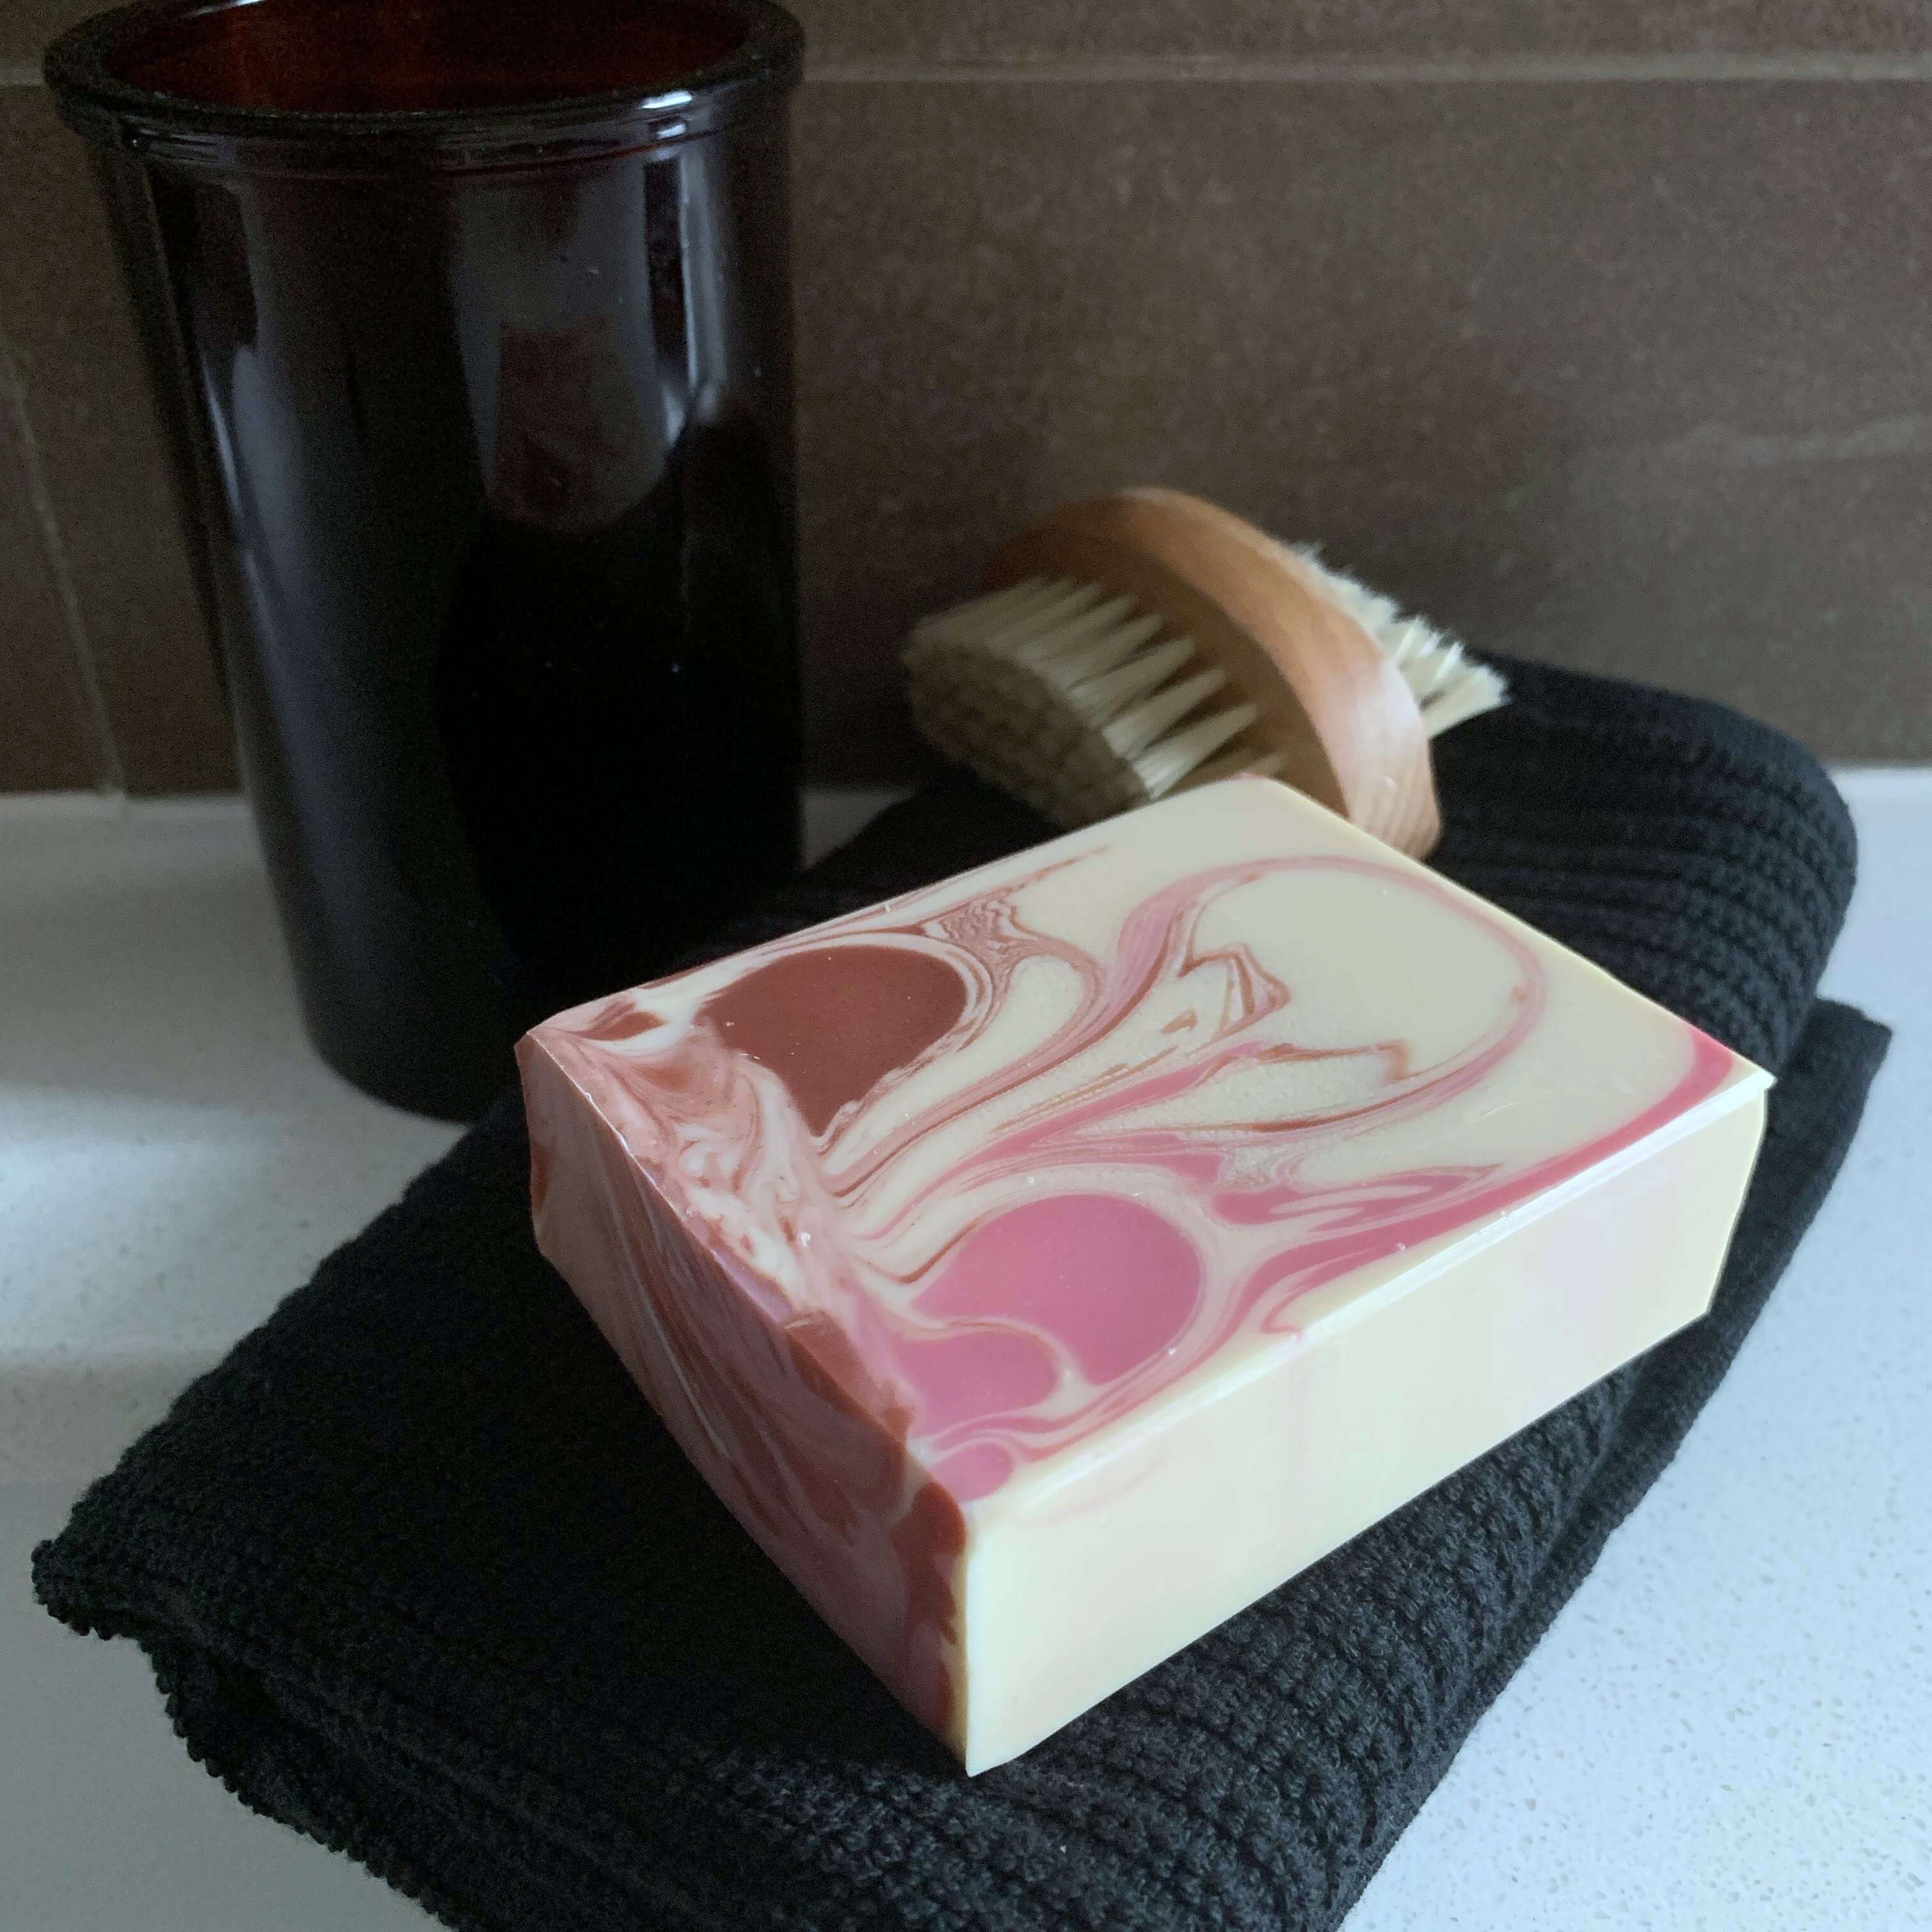 handmade soap for guests airbnb inlaws copper pink australian made vegan